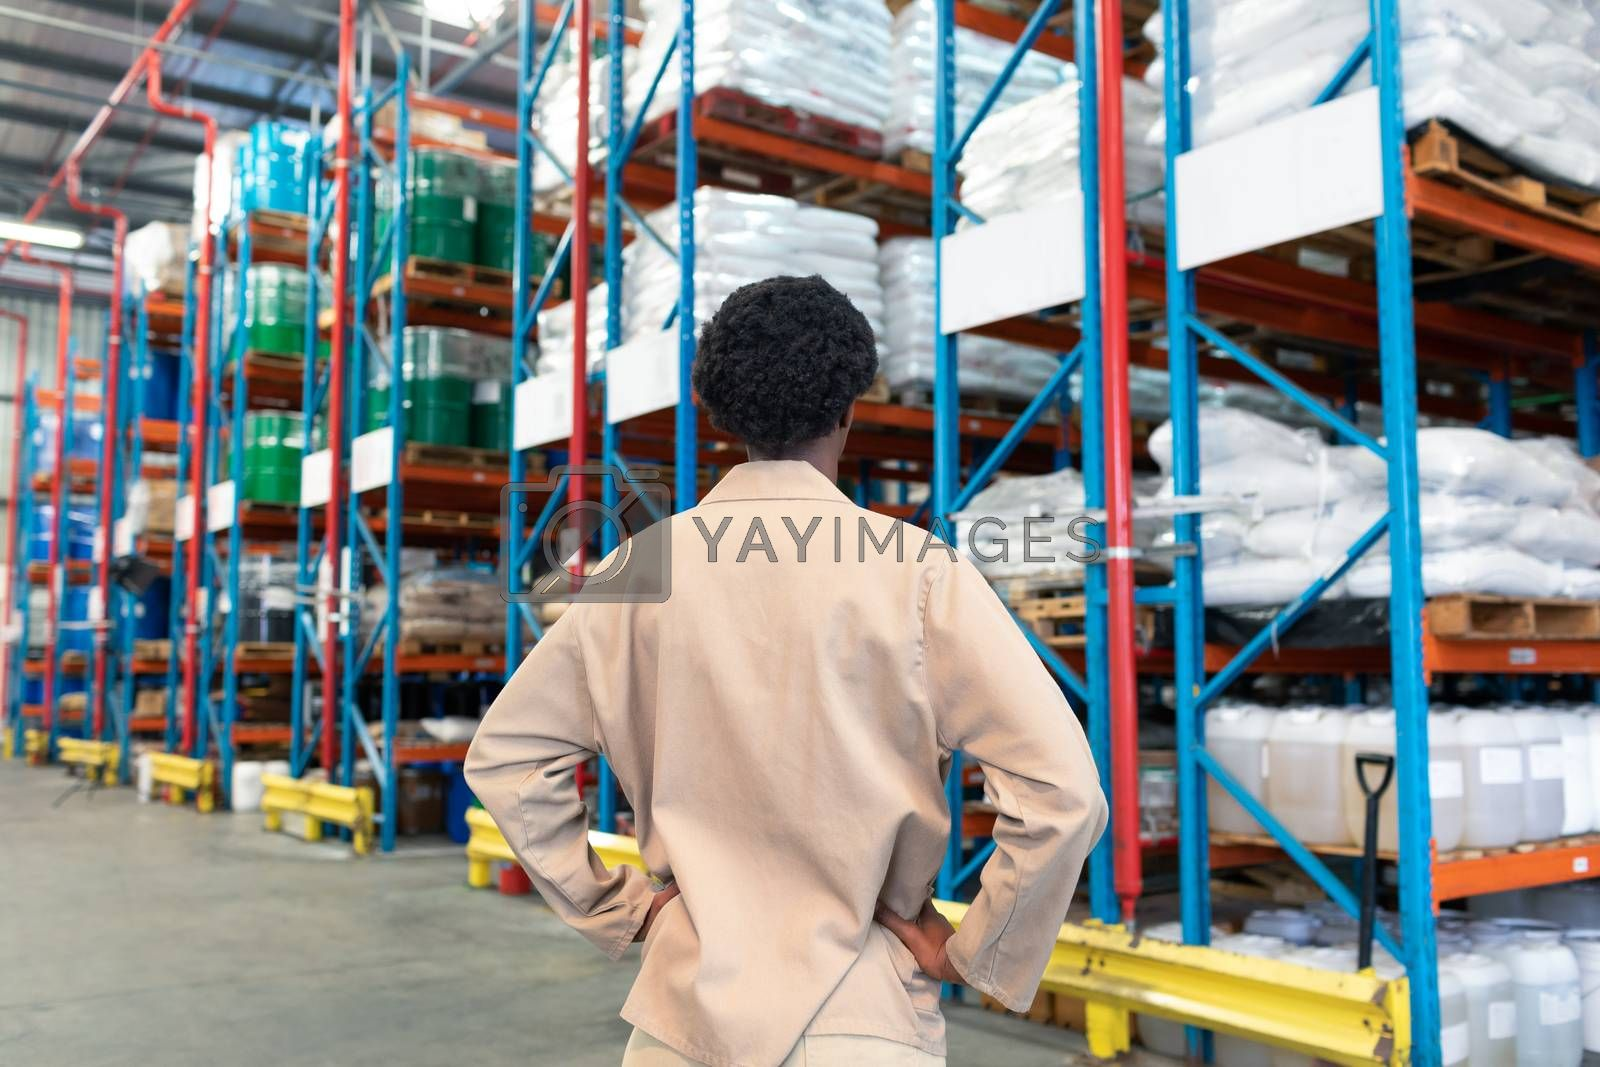 Rear view of young African-american female staff standing with hands on hip in warehouse. This is a freight transportation and distribution warehouse. Industrial and industrial workers concept